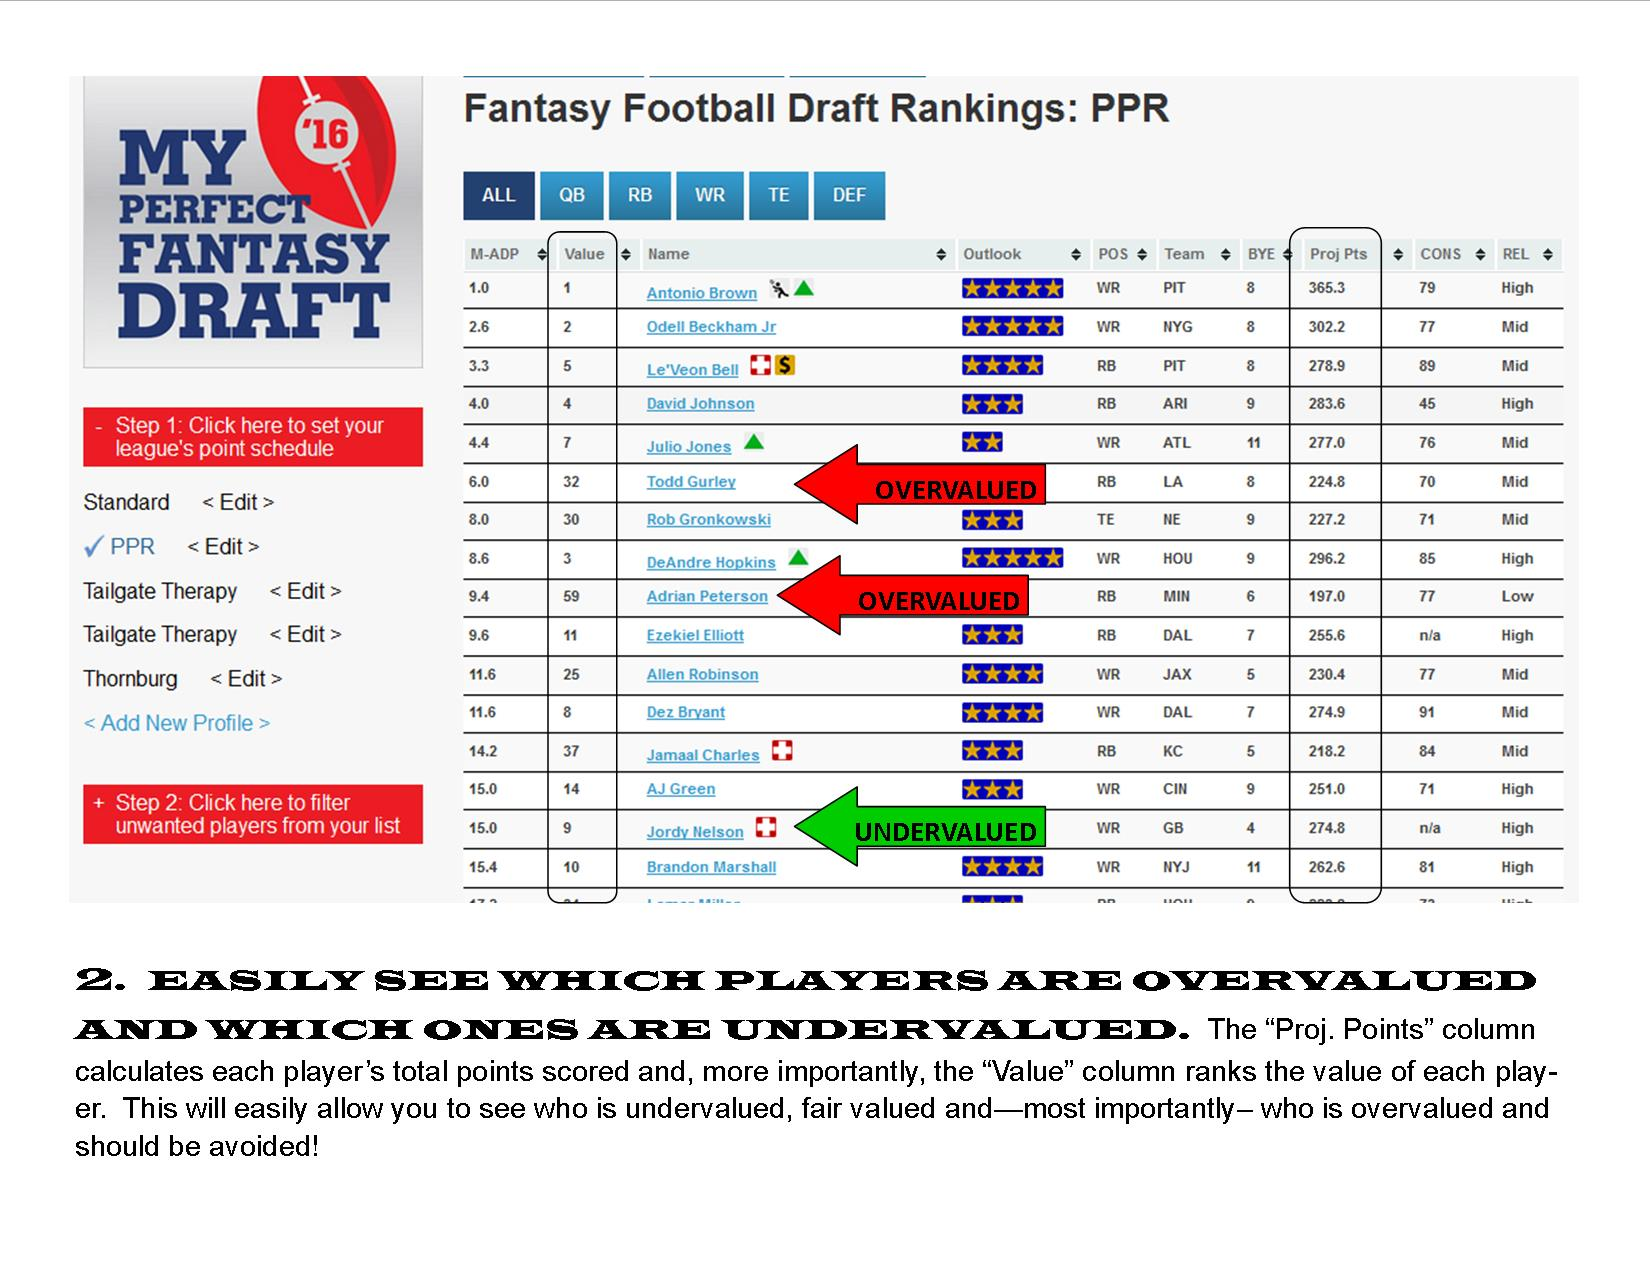 The app calculates projected points and values each player accordingly